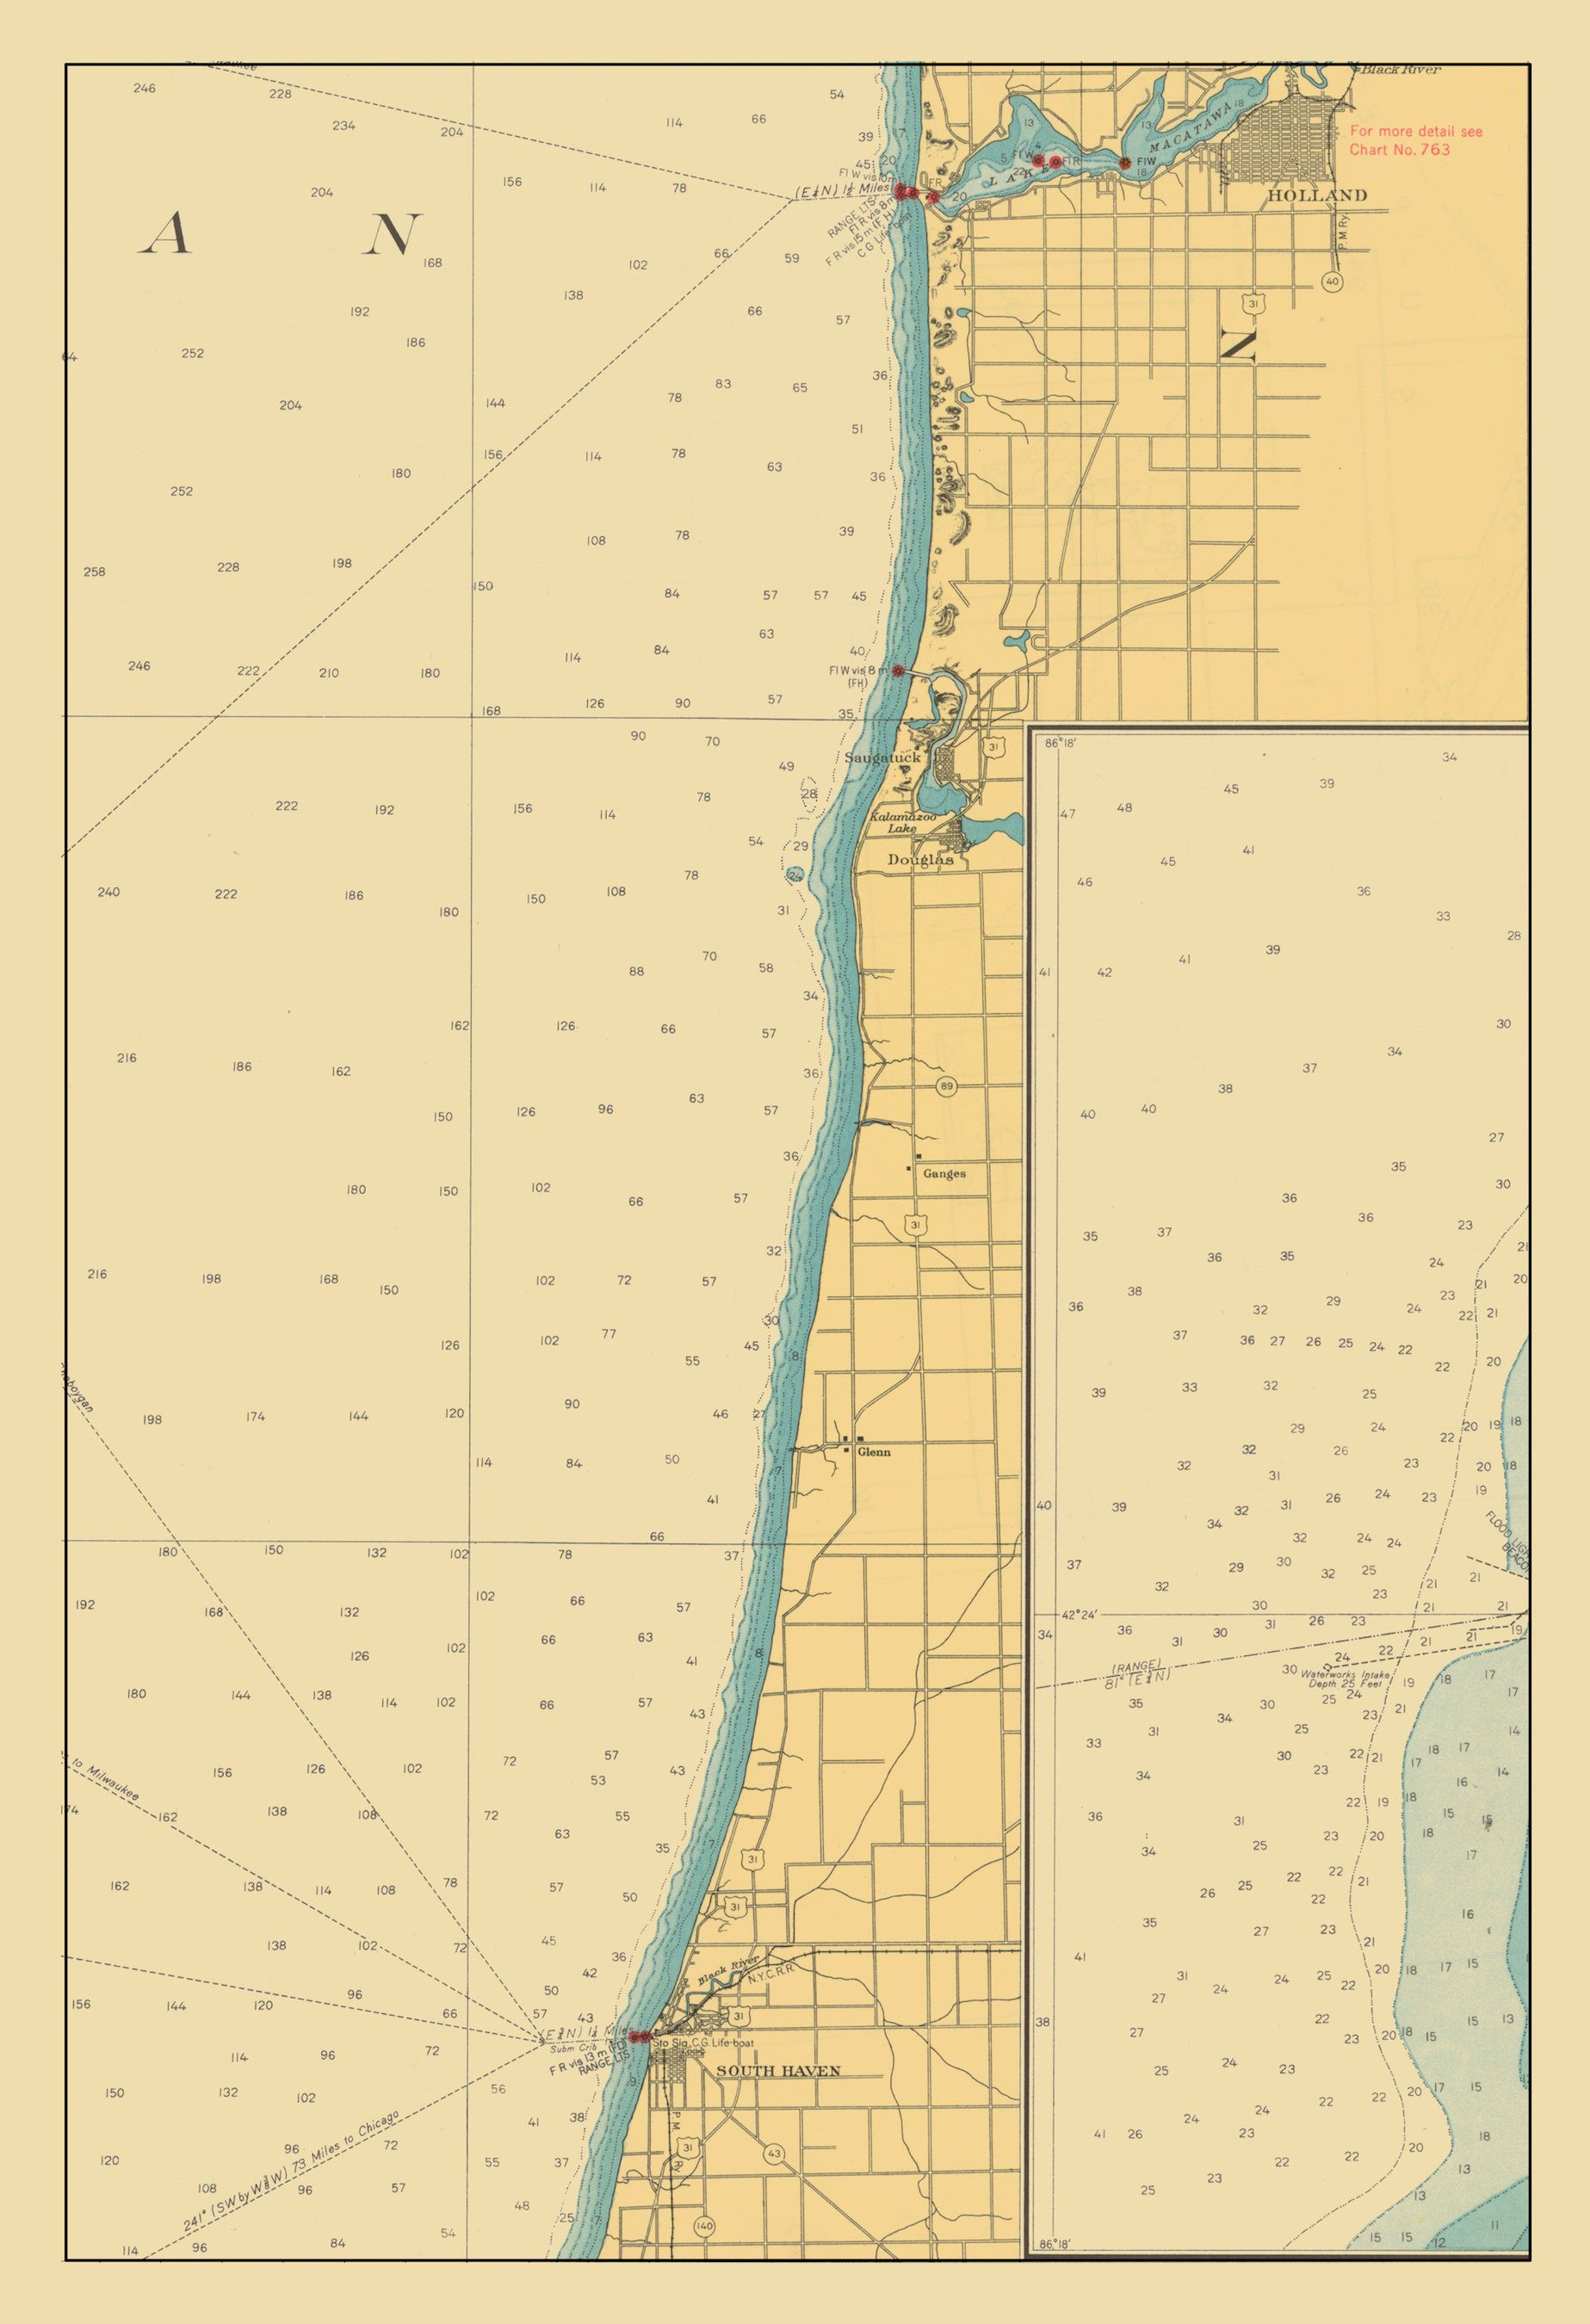 Lake Michigan map Lake Macatawa to South Haven 1947